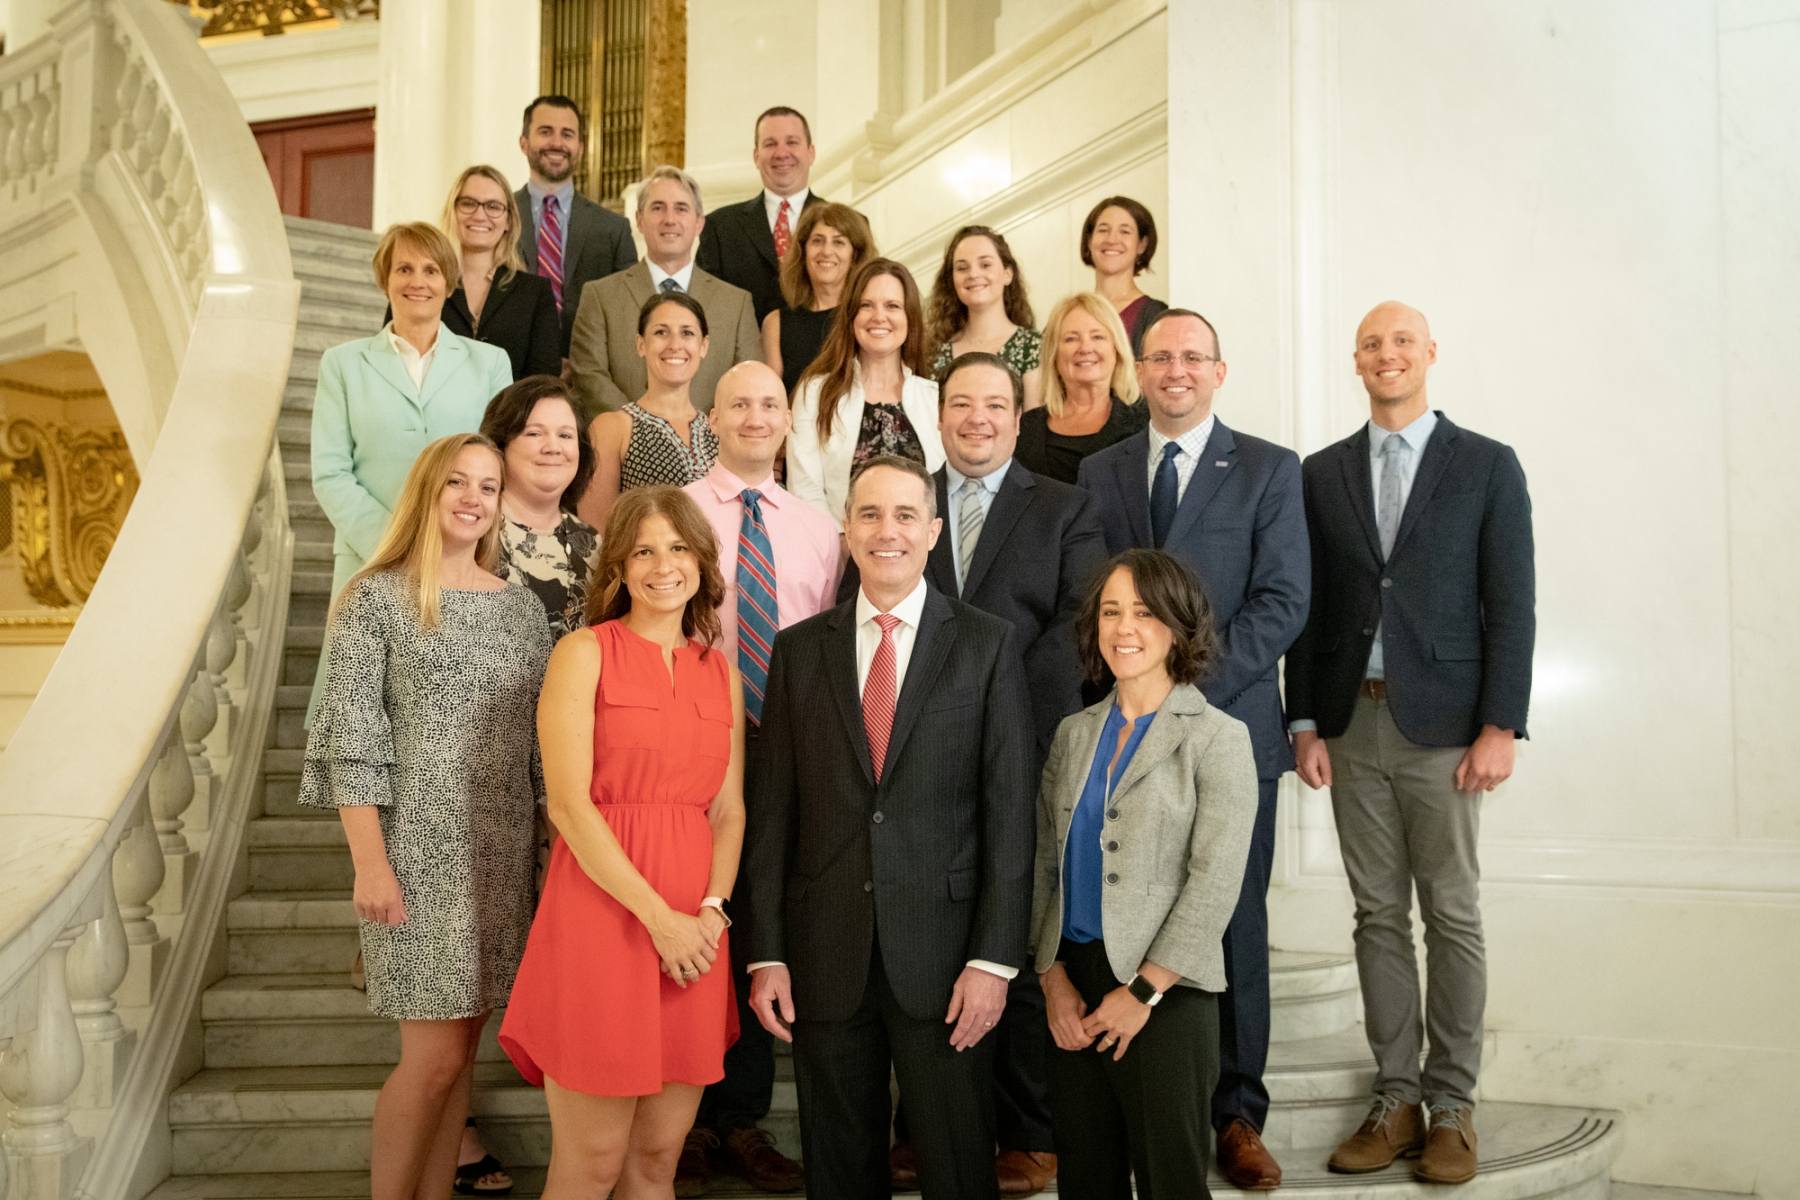 June 18, 2019: Senator with members of the PSEA - PA State Education Association